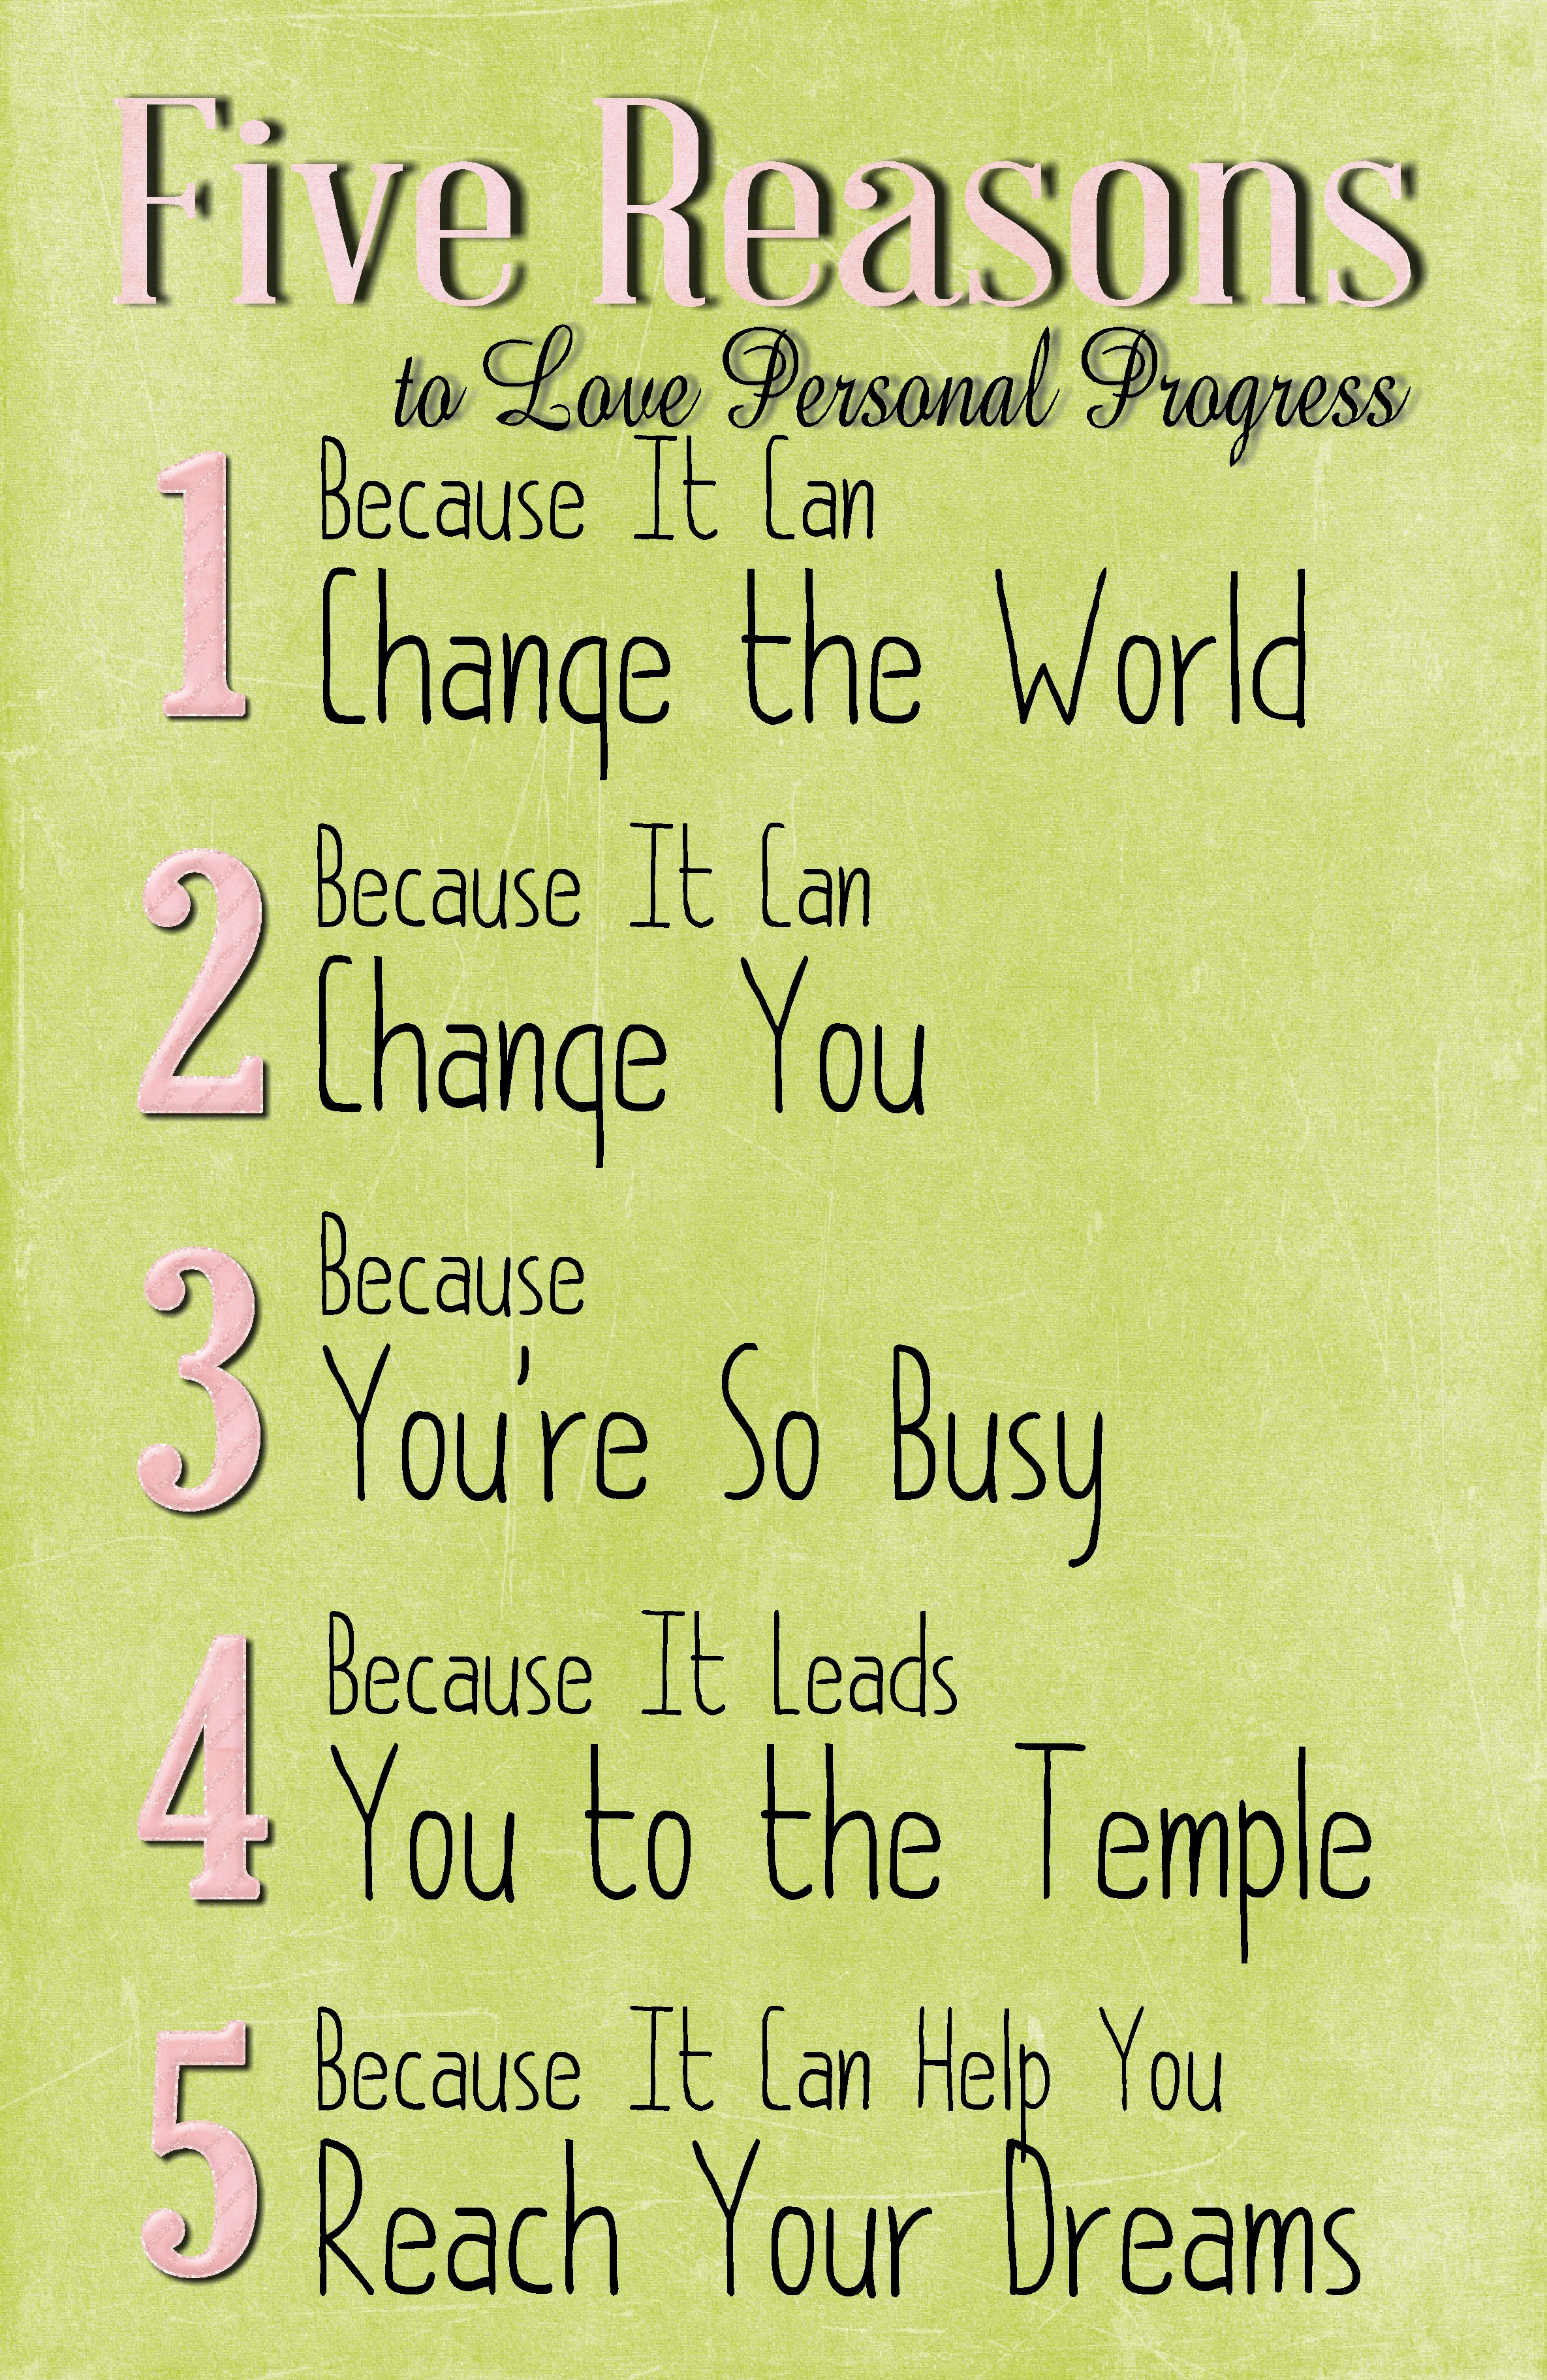 Quotes About Progress Five Reasons To Love Personal Progress New Beginnings  The Idea Door